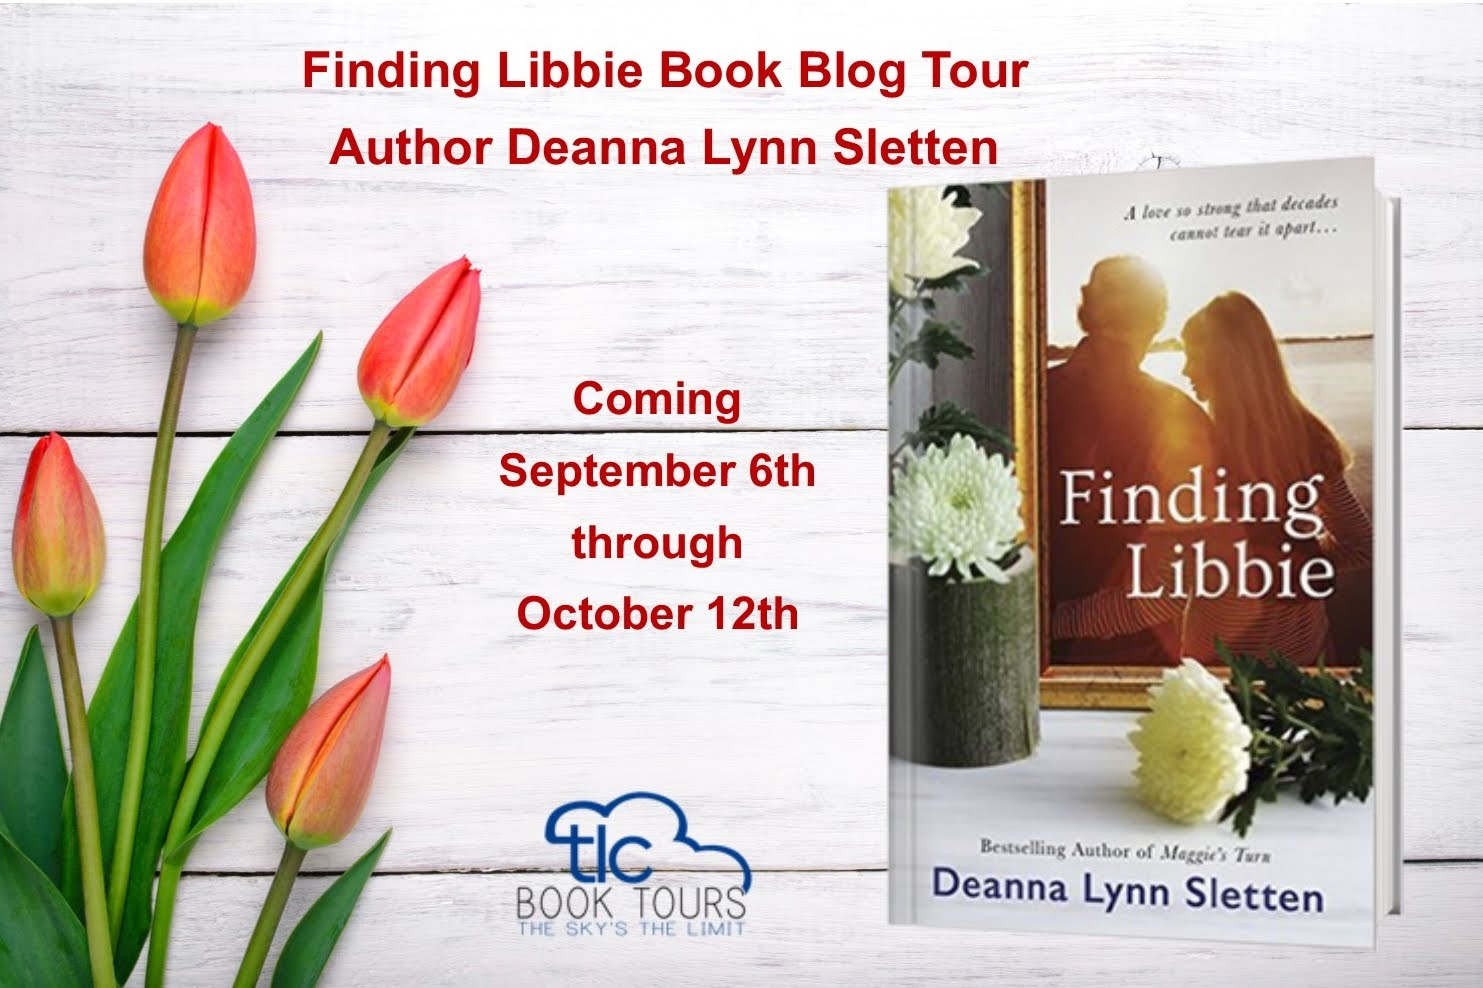 Finding Libbie Book Blog Tour